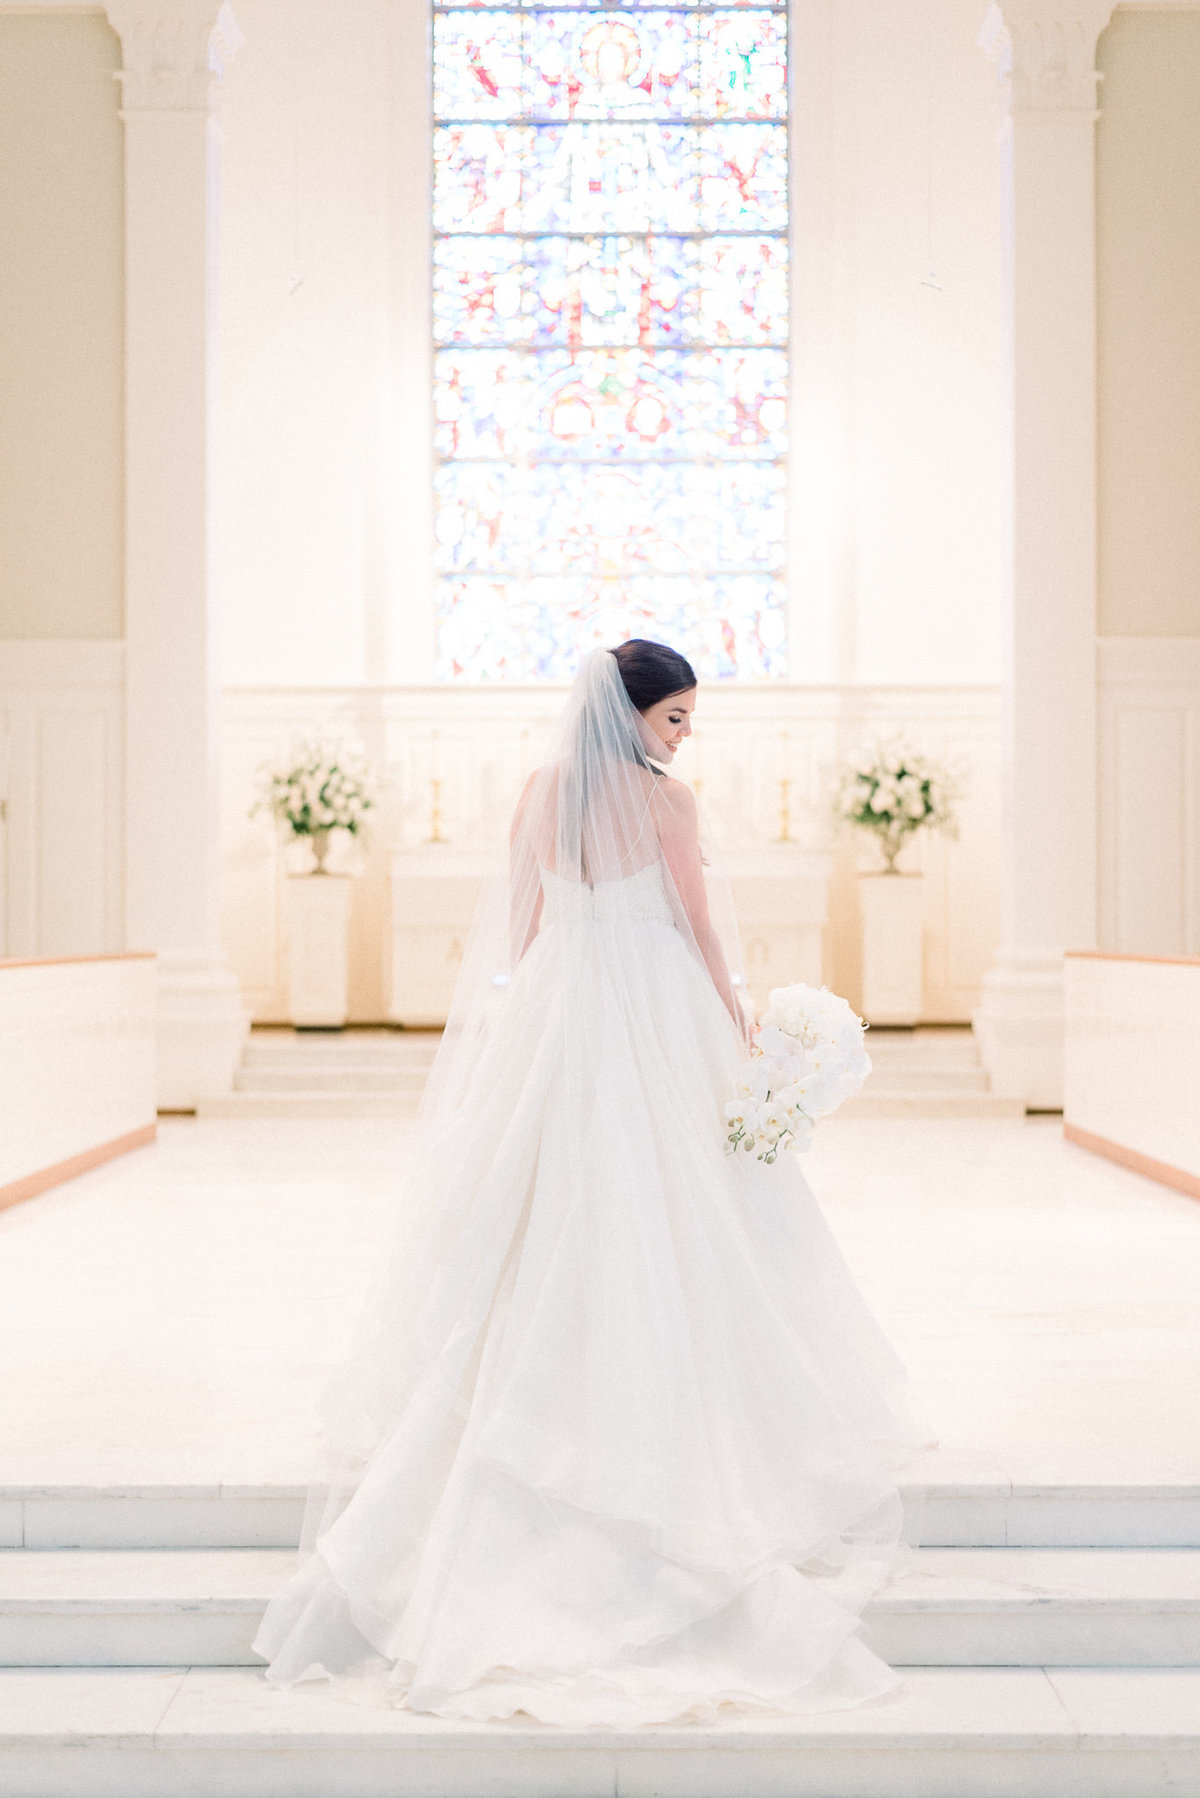 Canterbury Methodist Birmingham Museum of Art - Alabama Wedding Photographer21